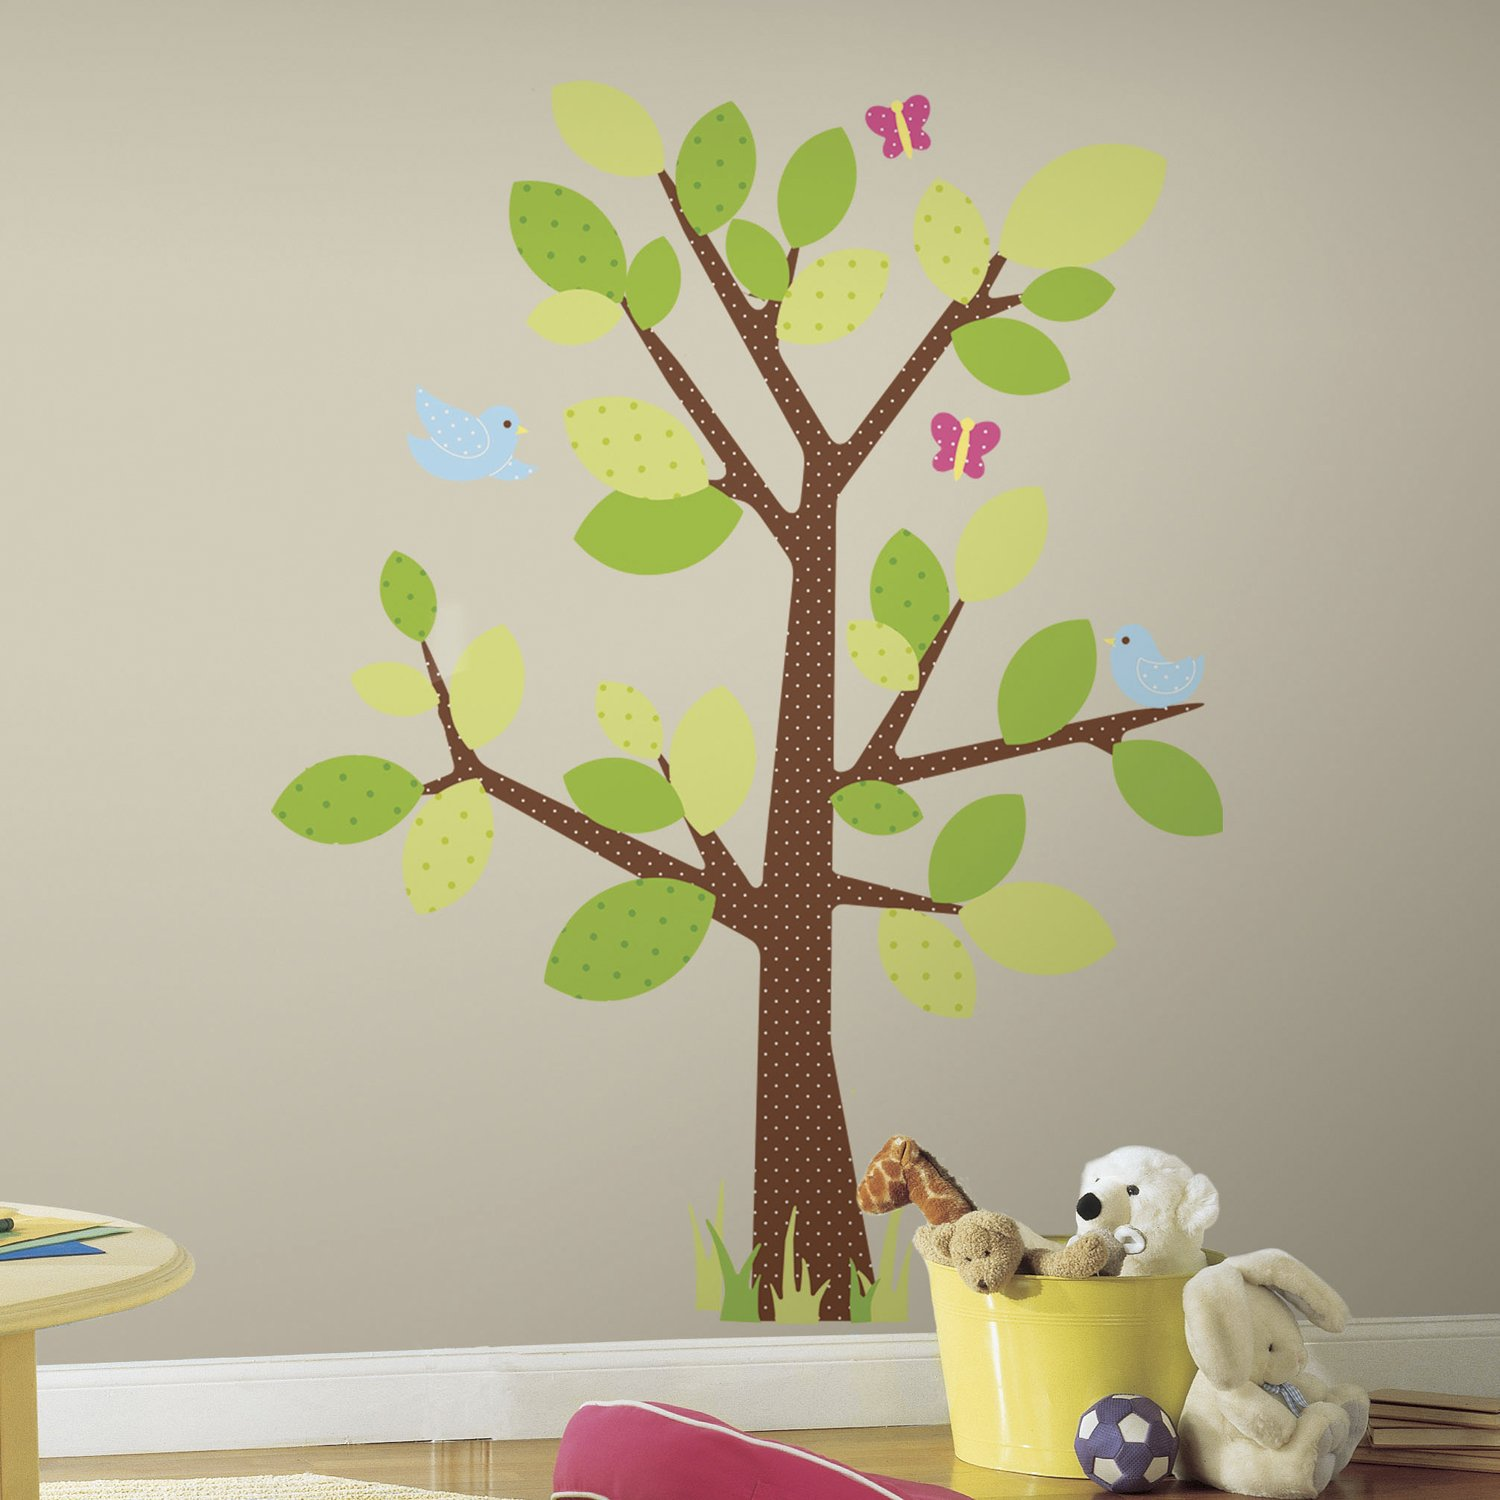 RoomMates Kids Tree Peel and Stick Giant Wall Decal